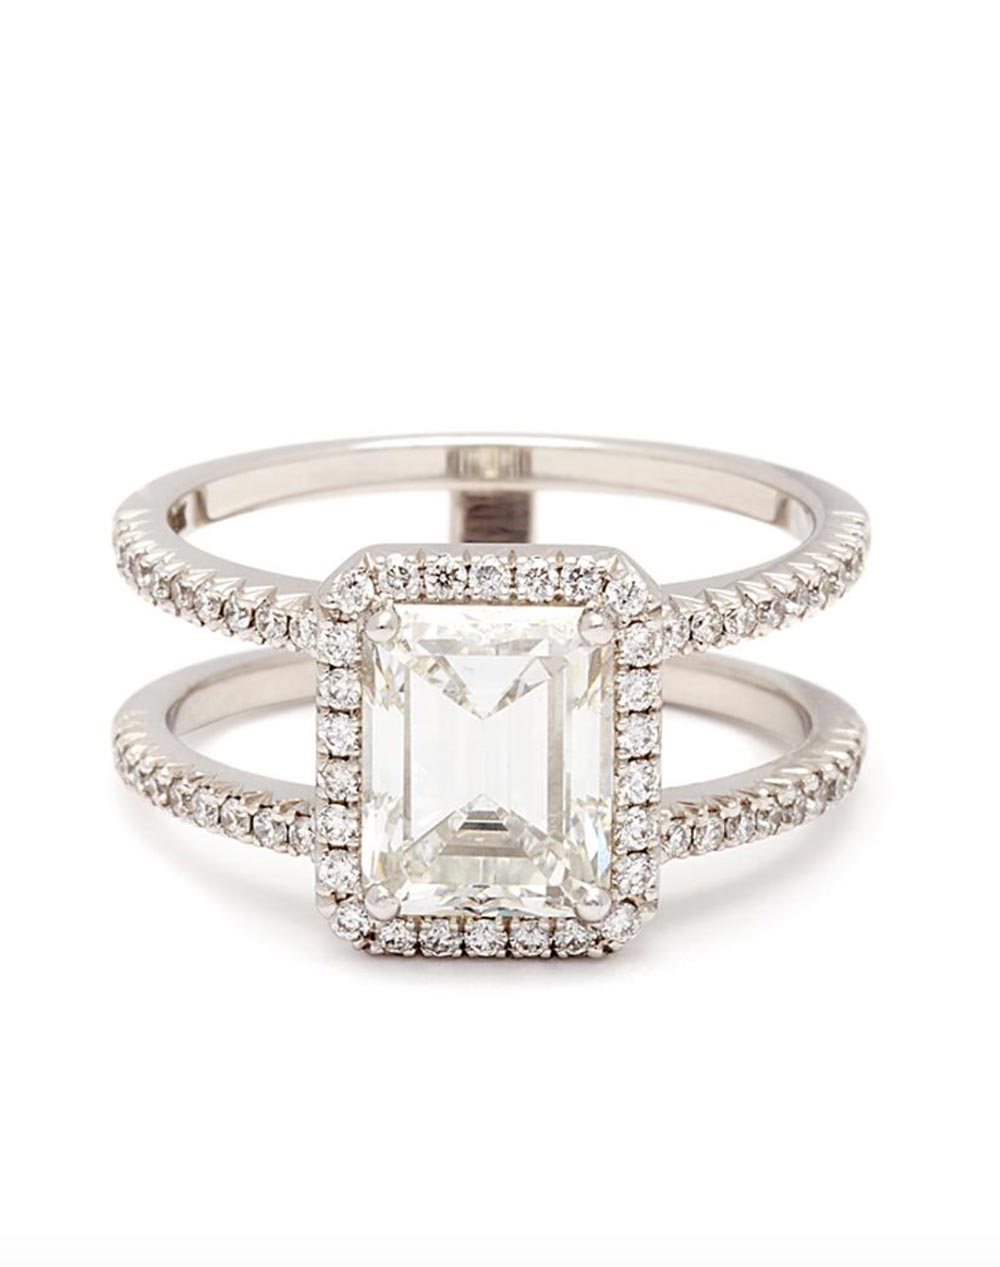 double banded emerald cut engagement ring